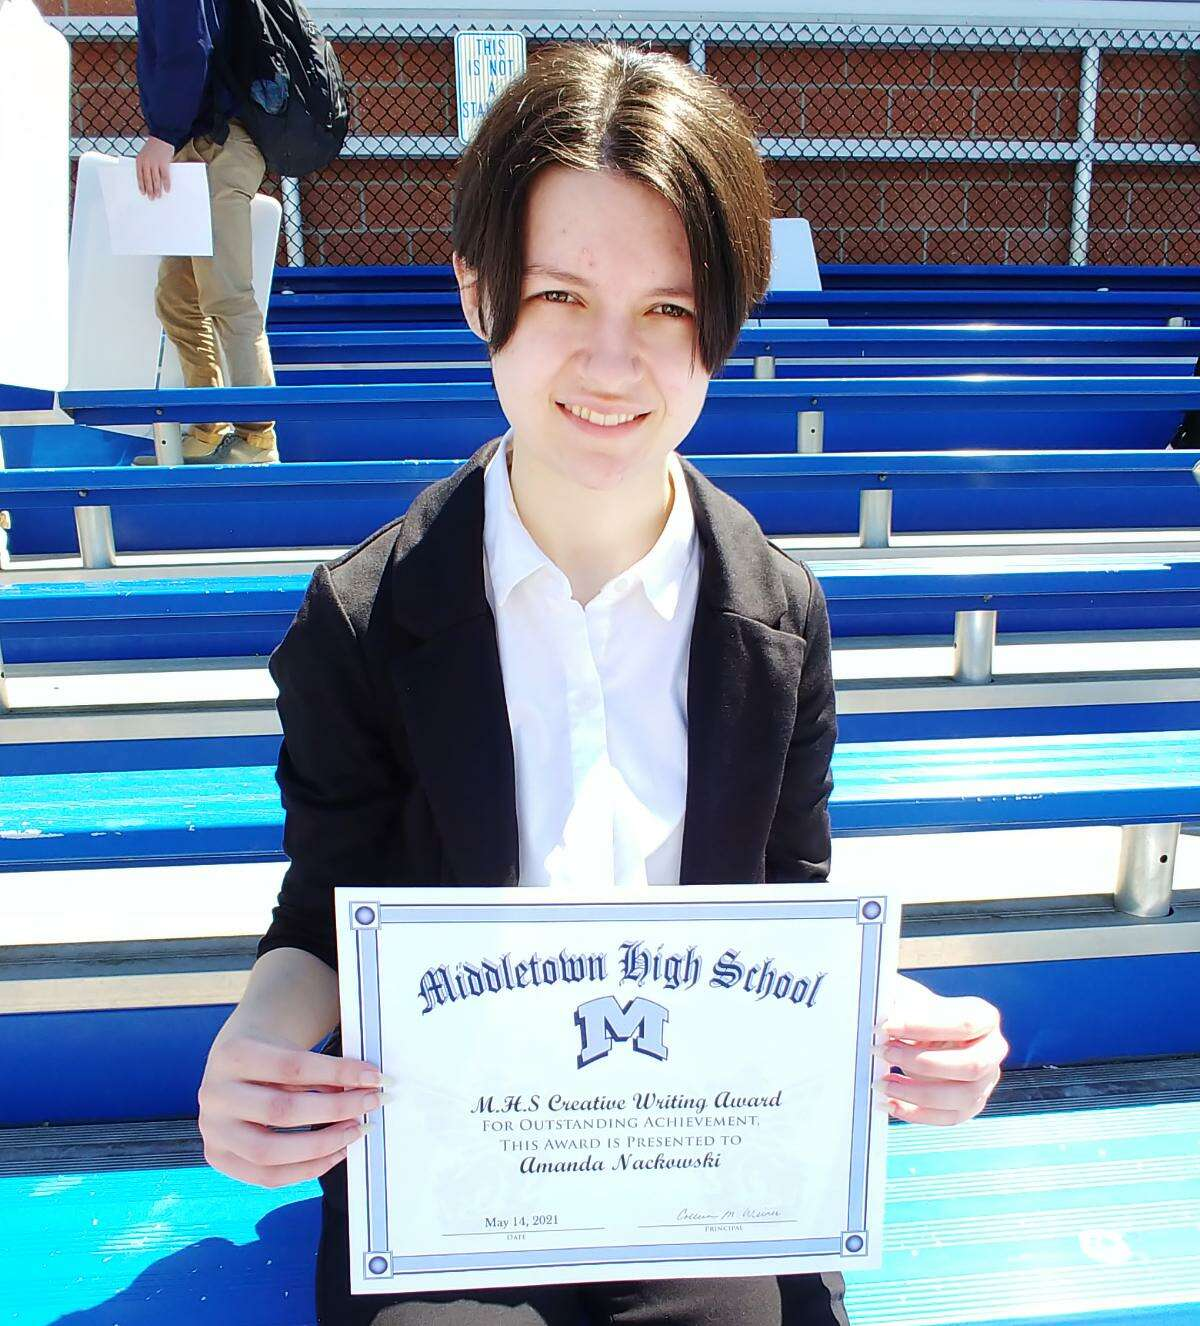 Middletown High School presented scholarships and various awards to students during a ceremony May 14. Amanda Nackowski took home the creative writing award.